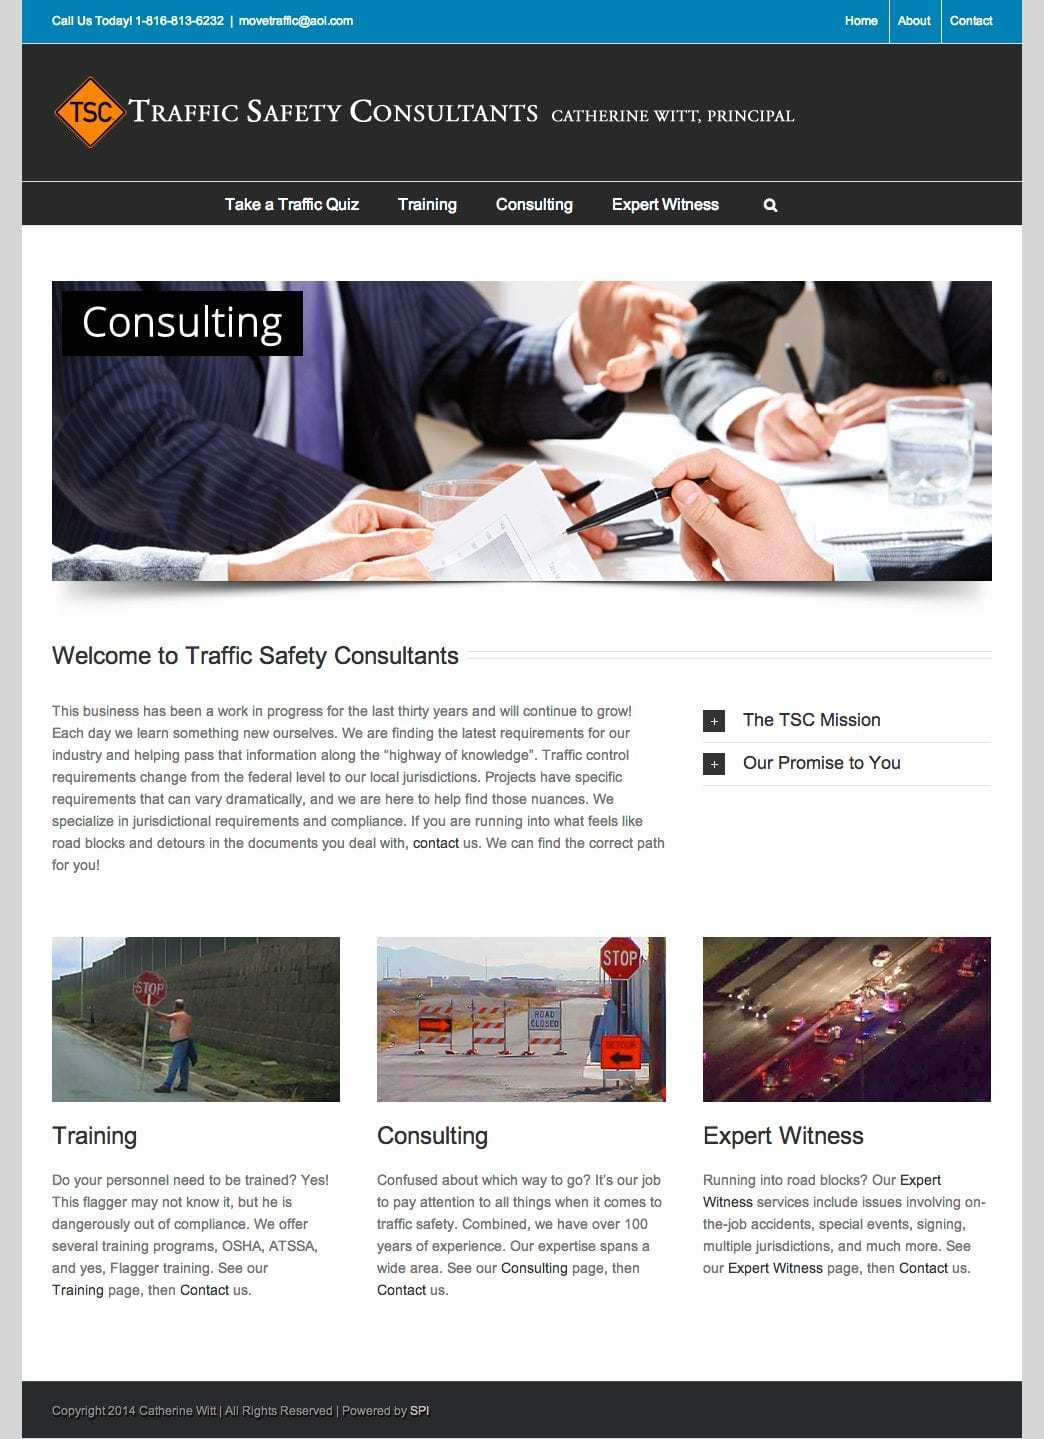 Traffic Safety Consultants